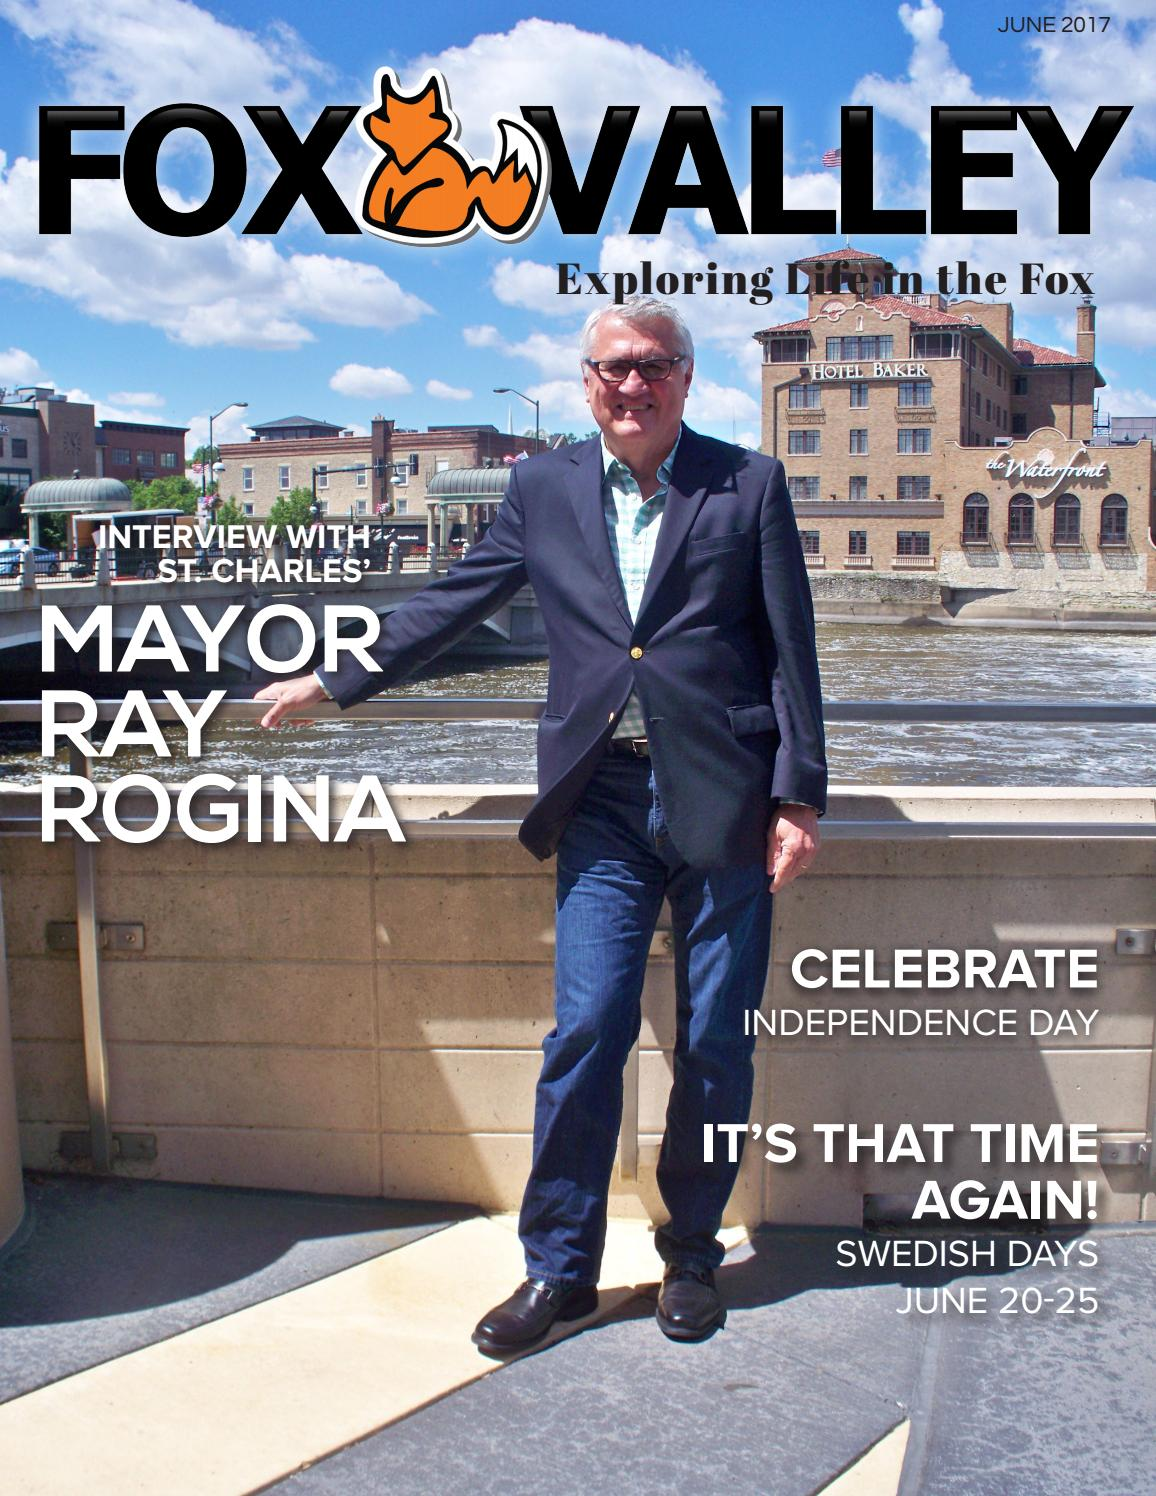 Fox valley magazine june 2017 by when how issuu for St charles craft show 2017